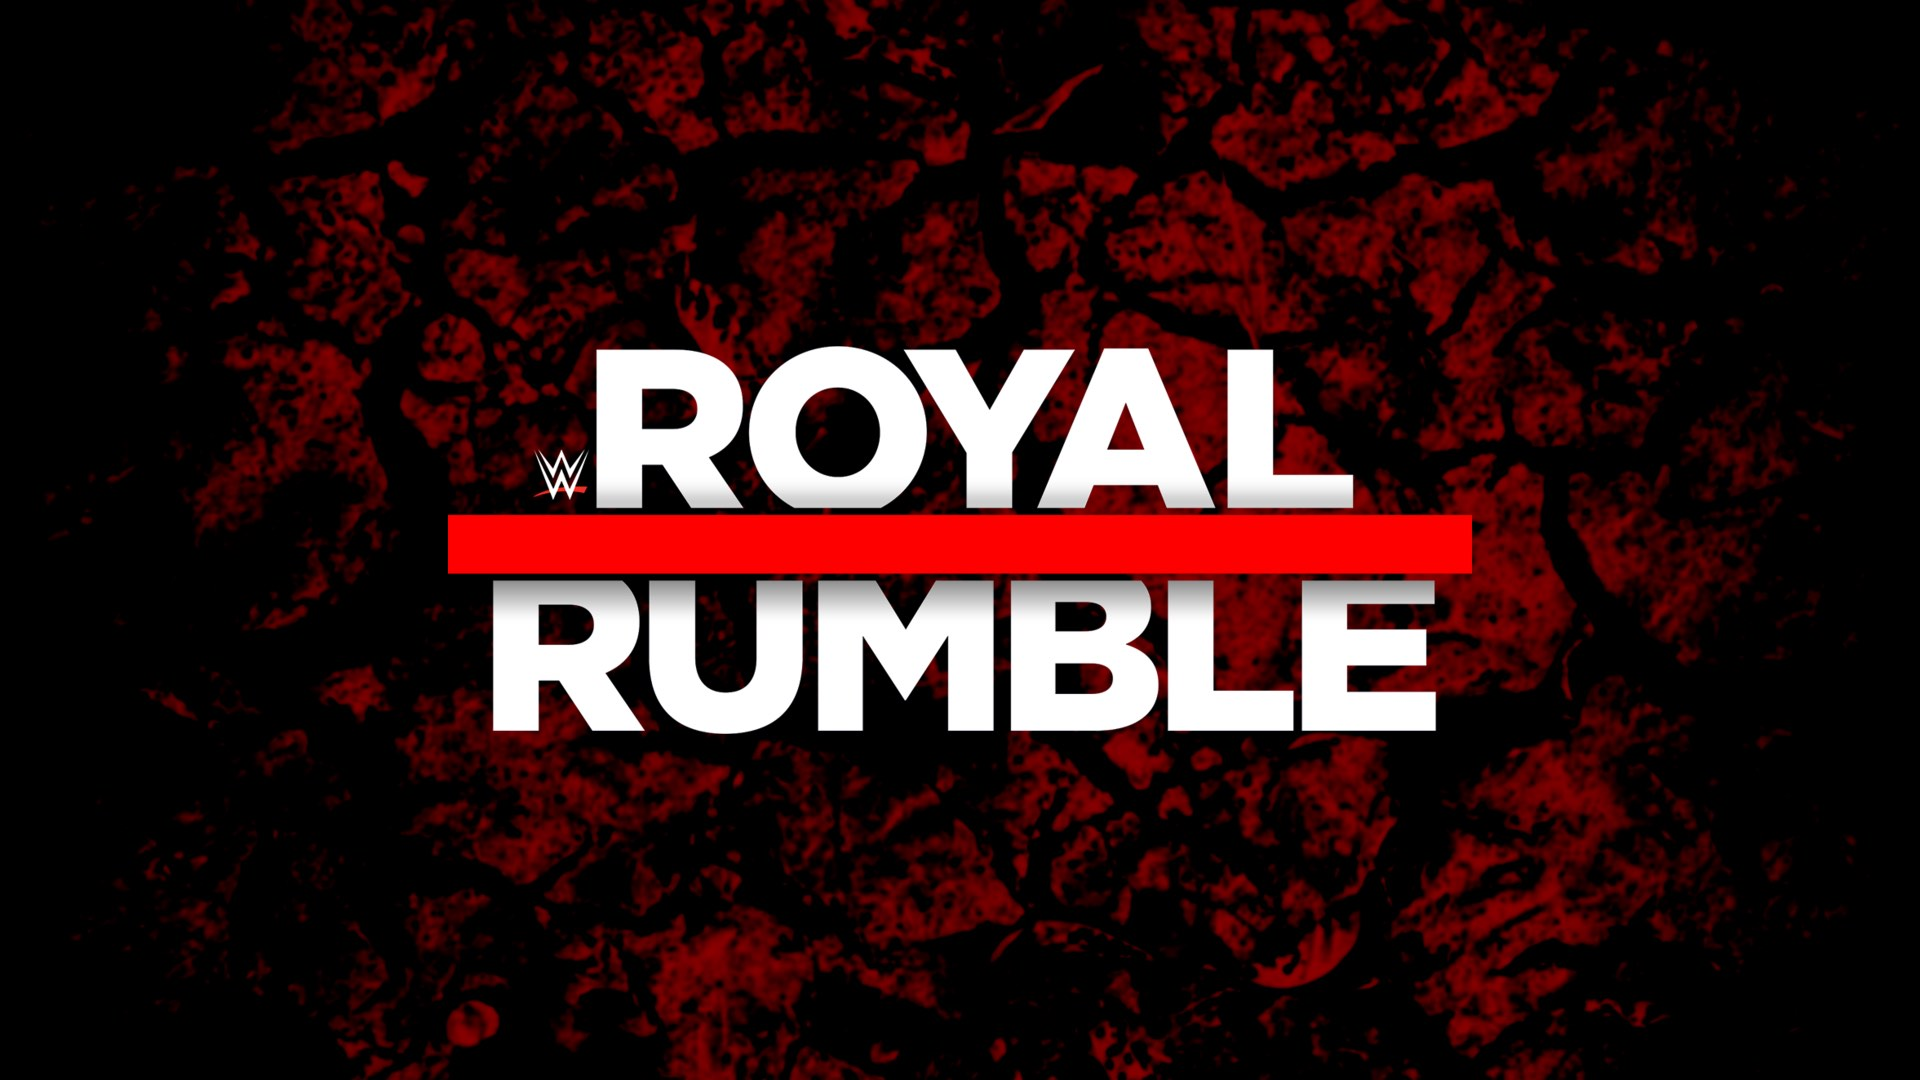 Royal Rumble: The Complete Anthology DVD Review